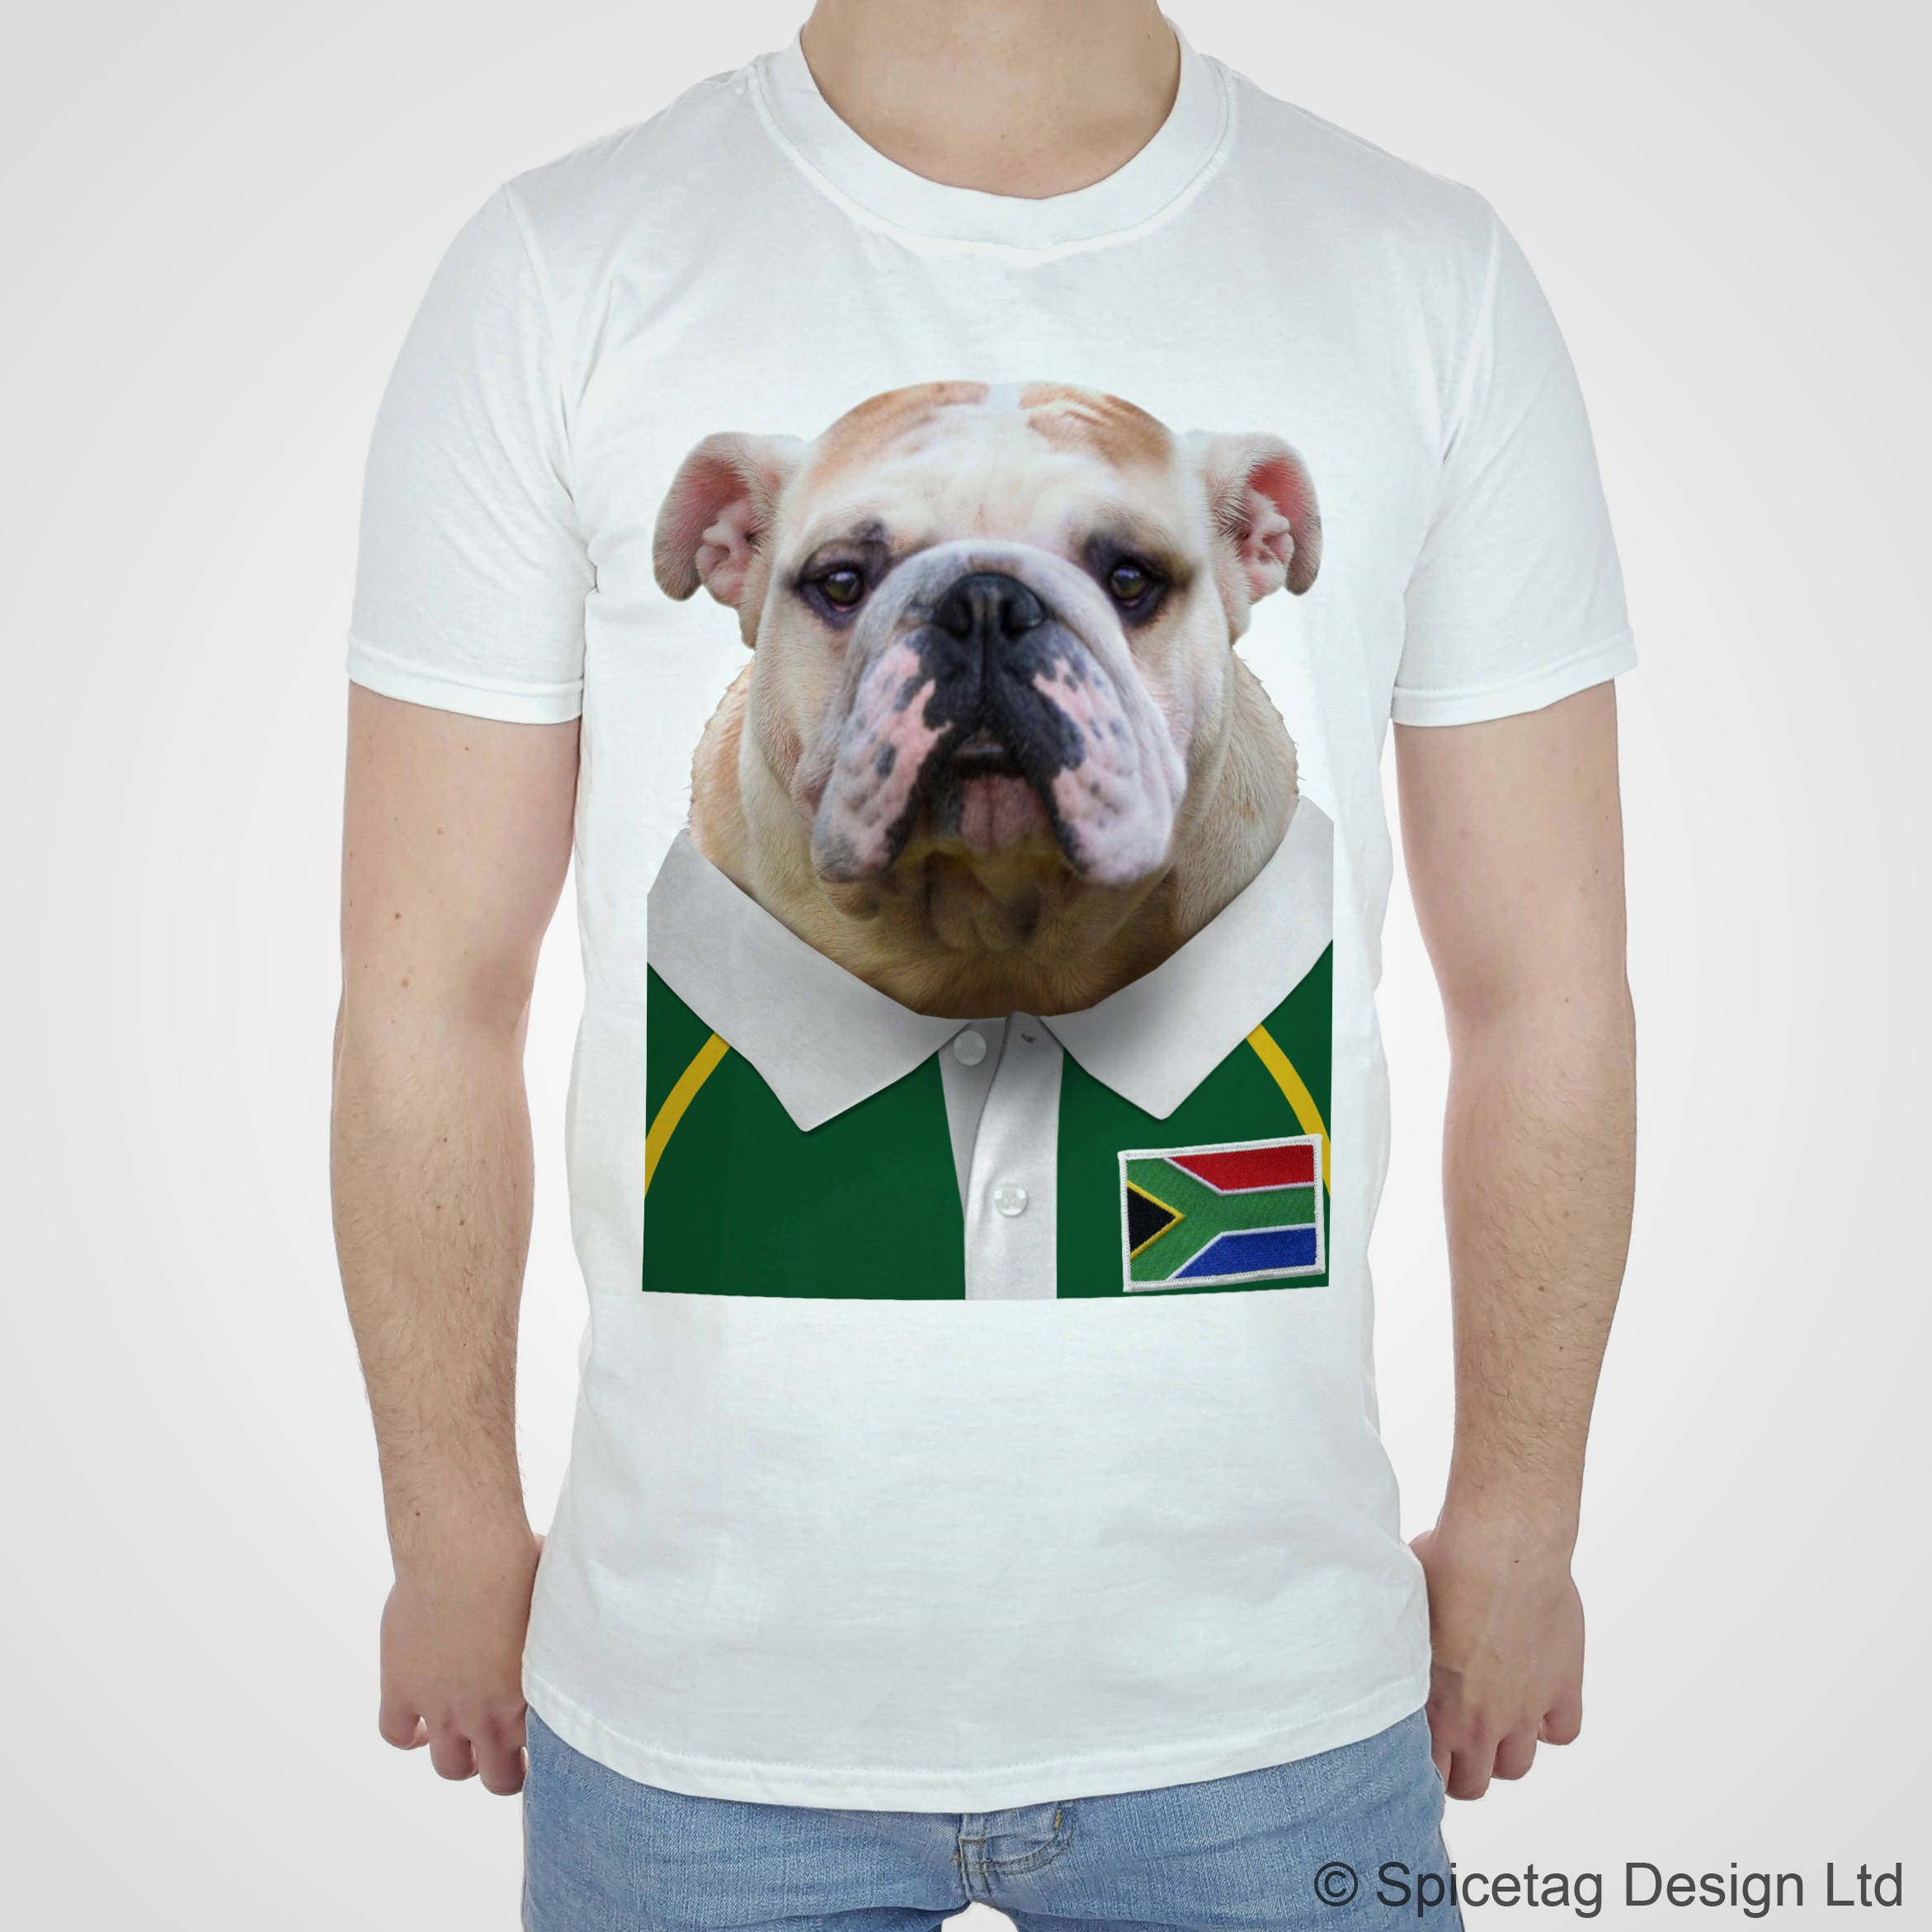 Rugby Shirt For Dog: South Africa Rugby Bulldog T-shirt Bull Dog Tshirt Puppy